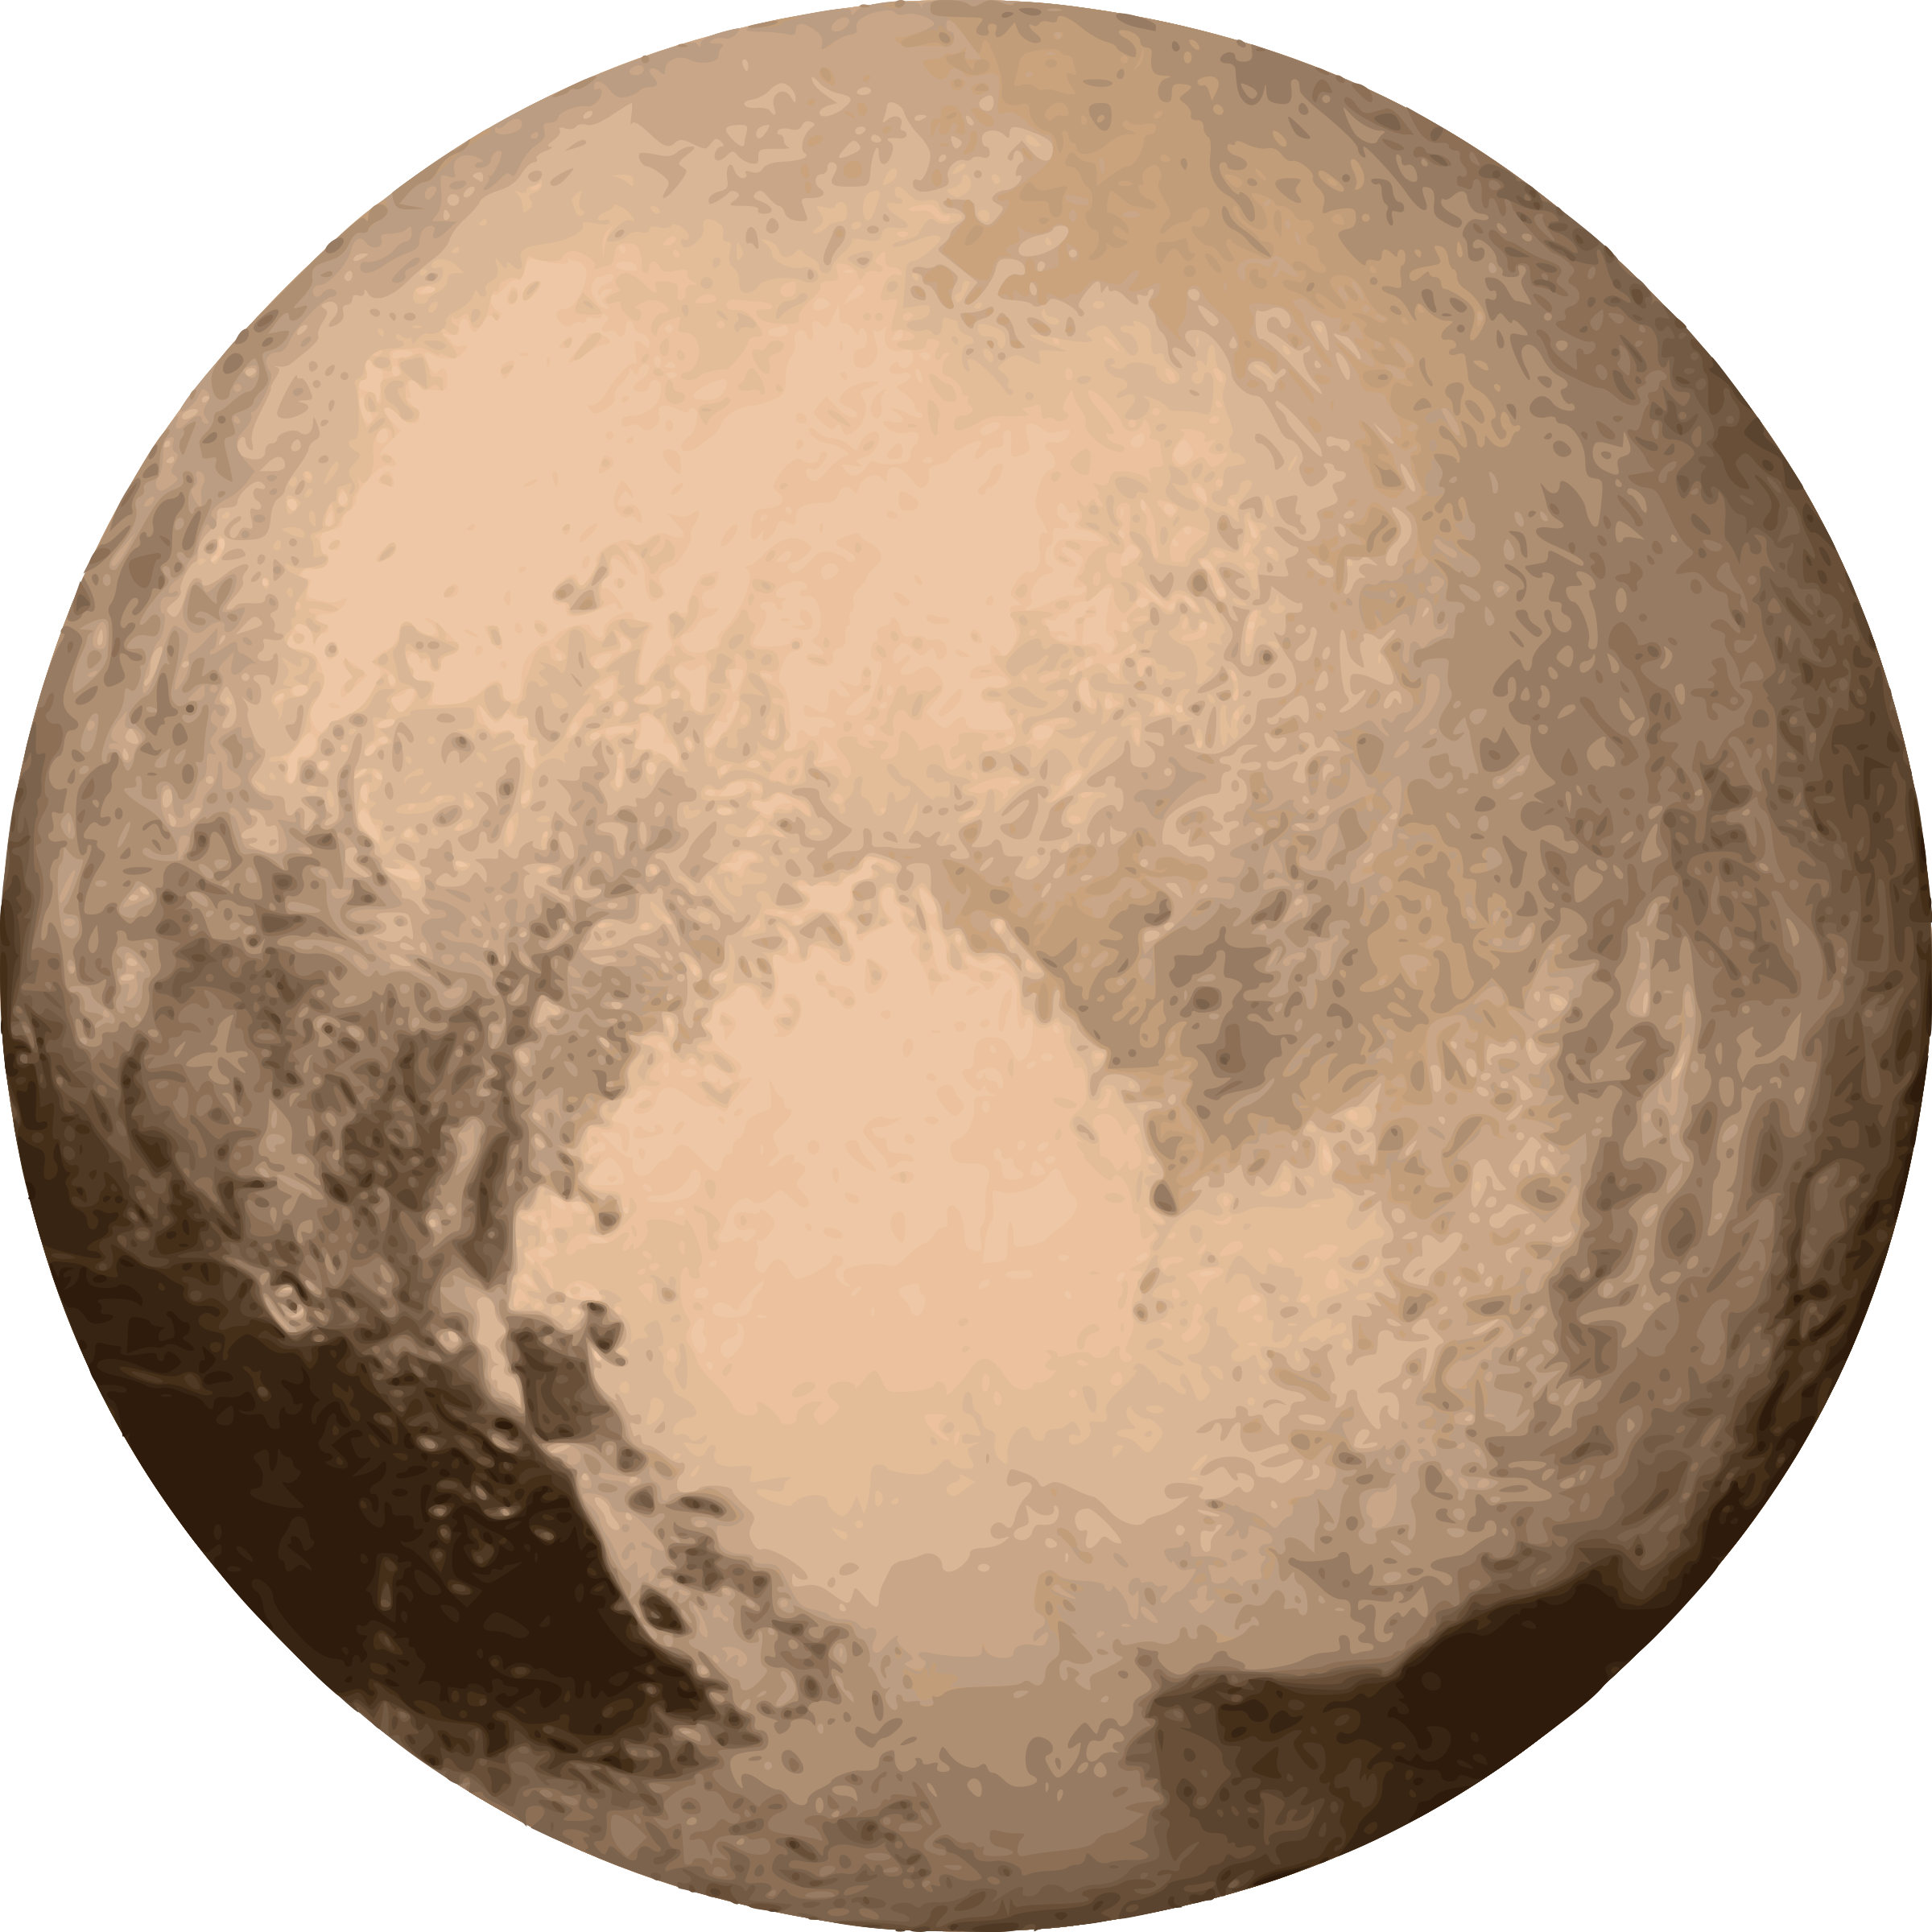 Planeten clipart systemclip. Pluto letters west road